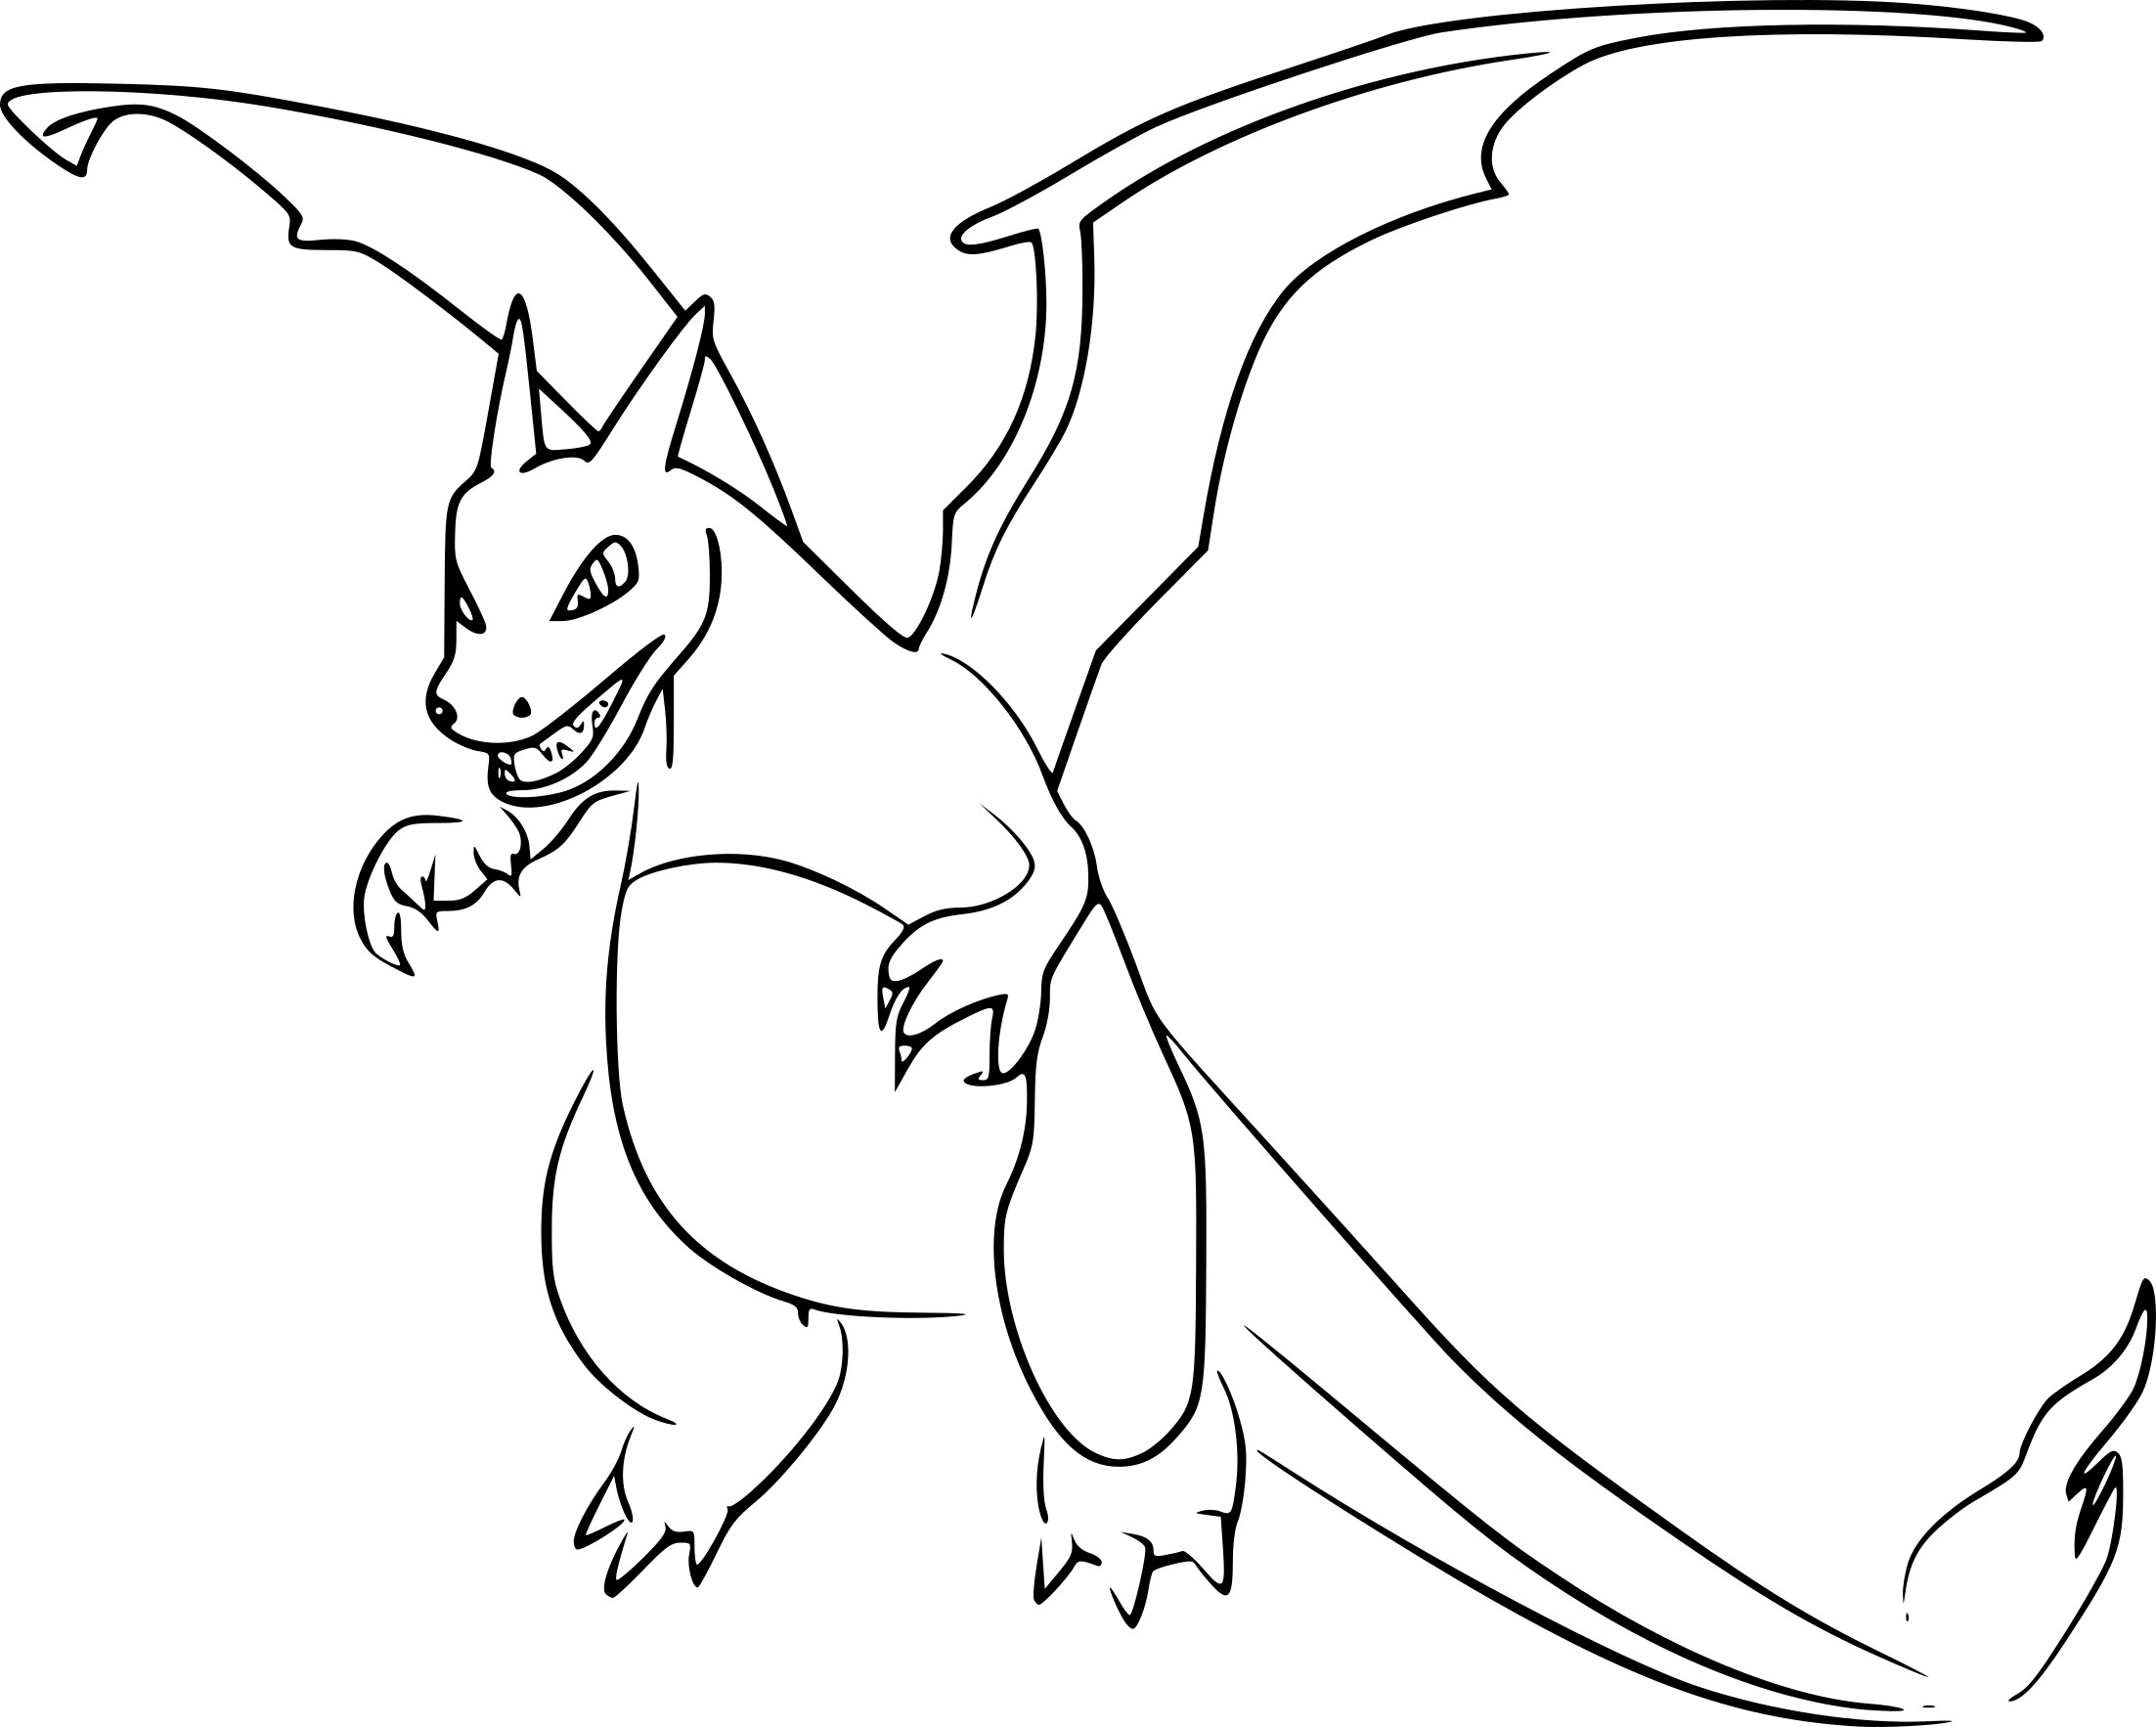 Coloriage dracaufeu pokemon go imprimer sur coloriages info - Coloriage pokemon dracaufeu ...